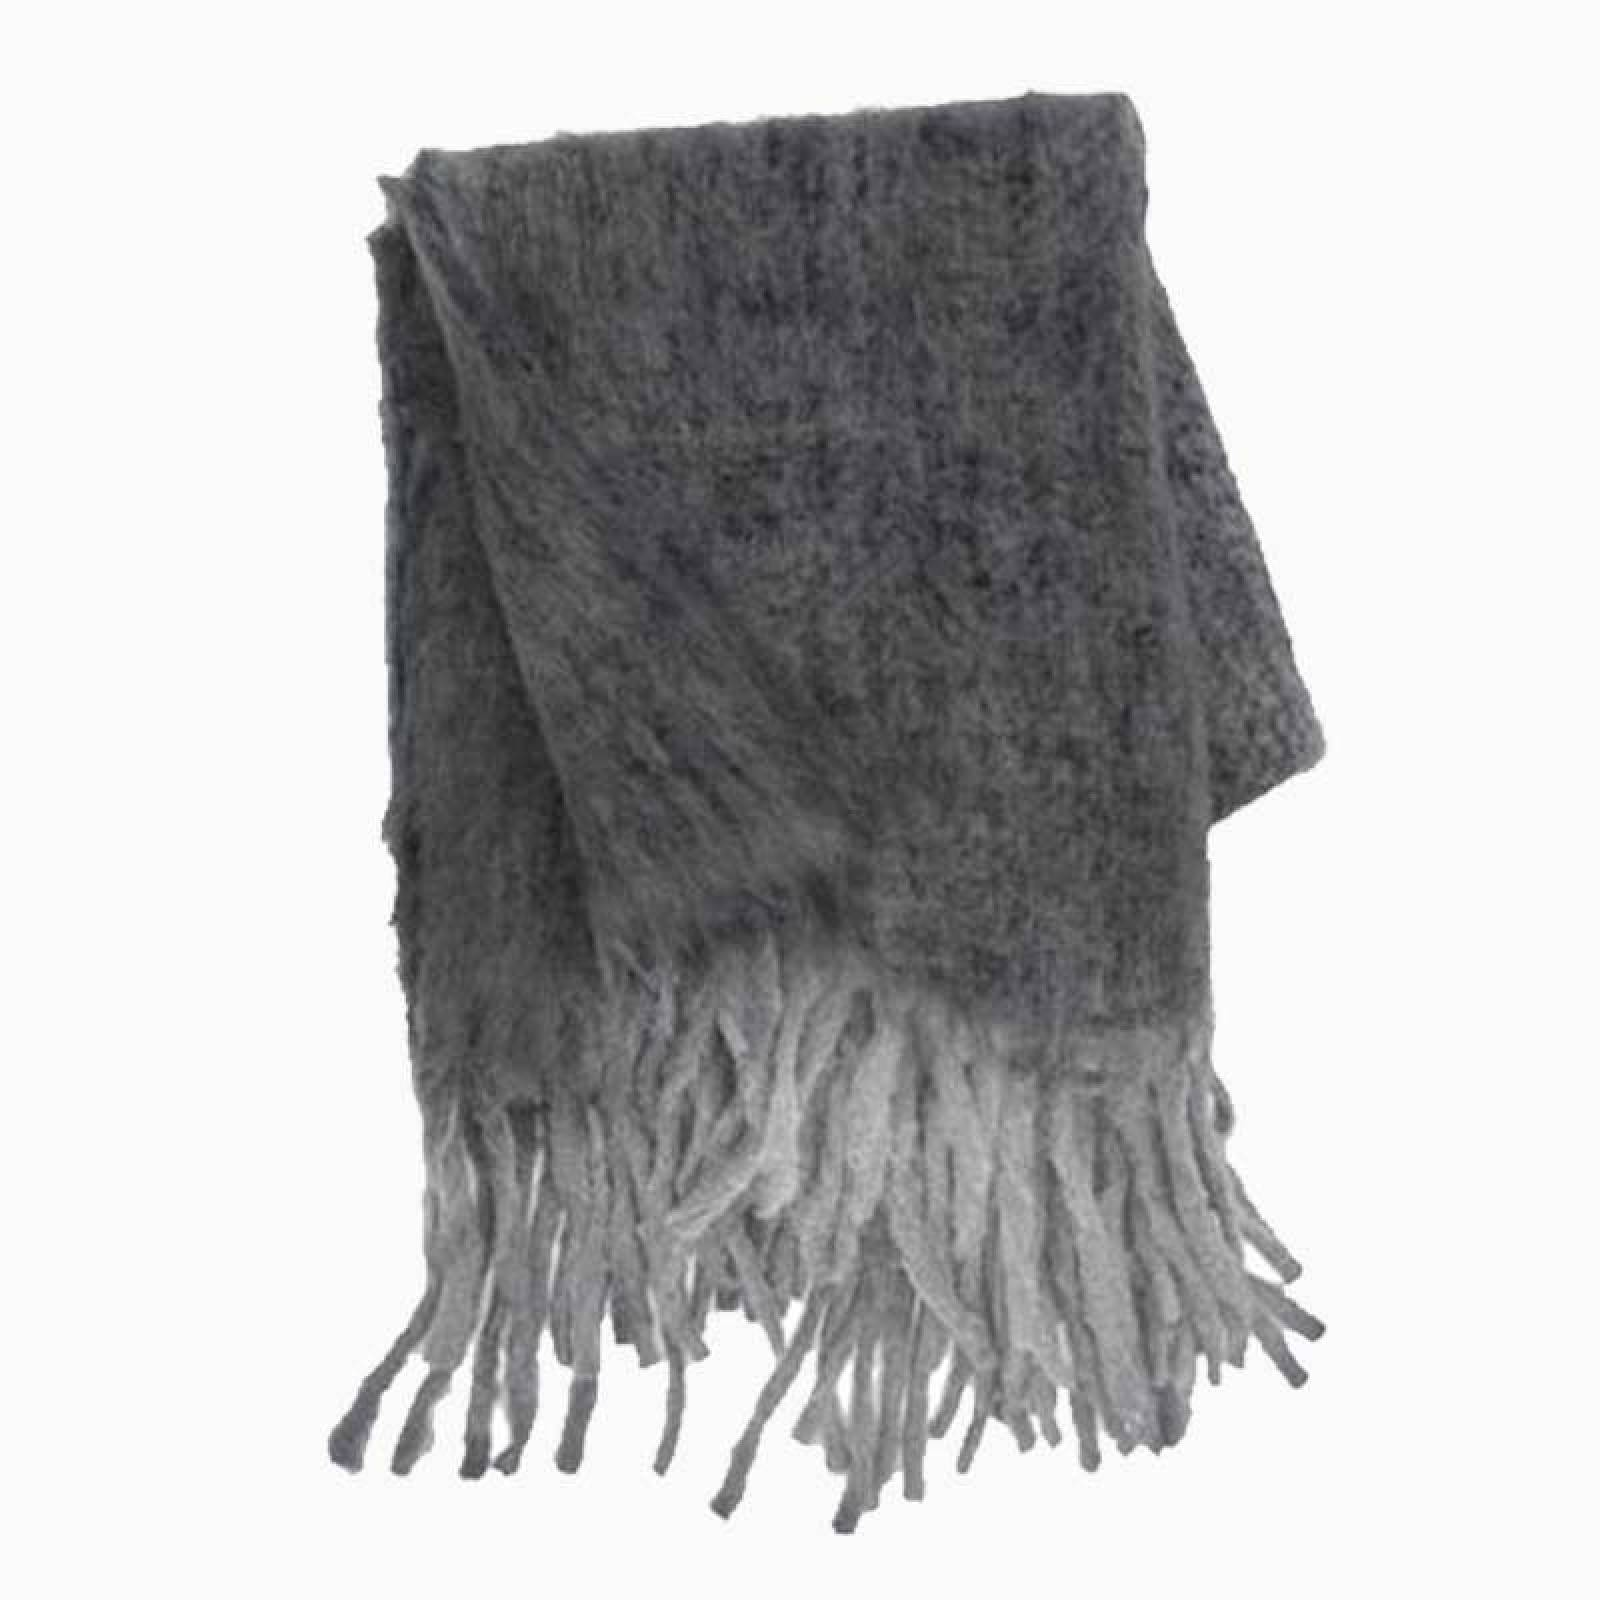 Wool Blanket With Fringing In Ash thumbnails